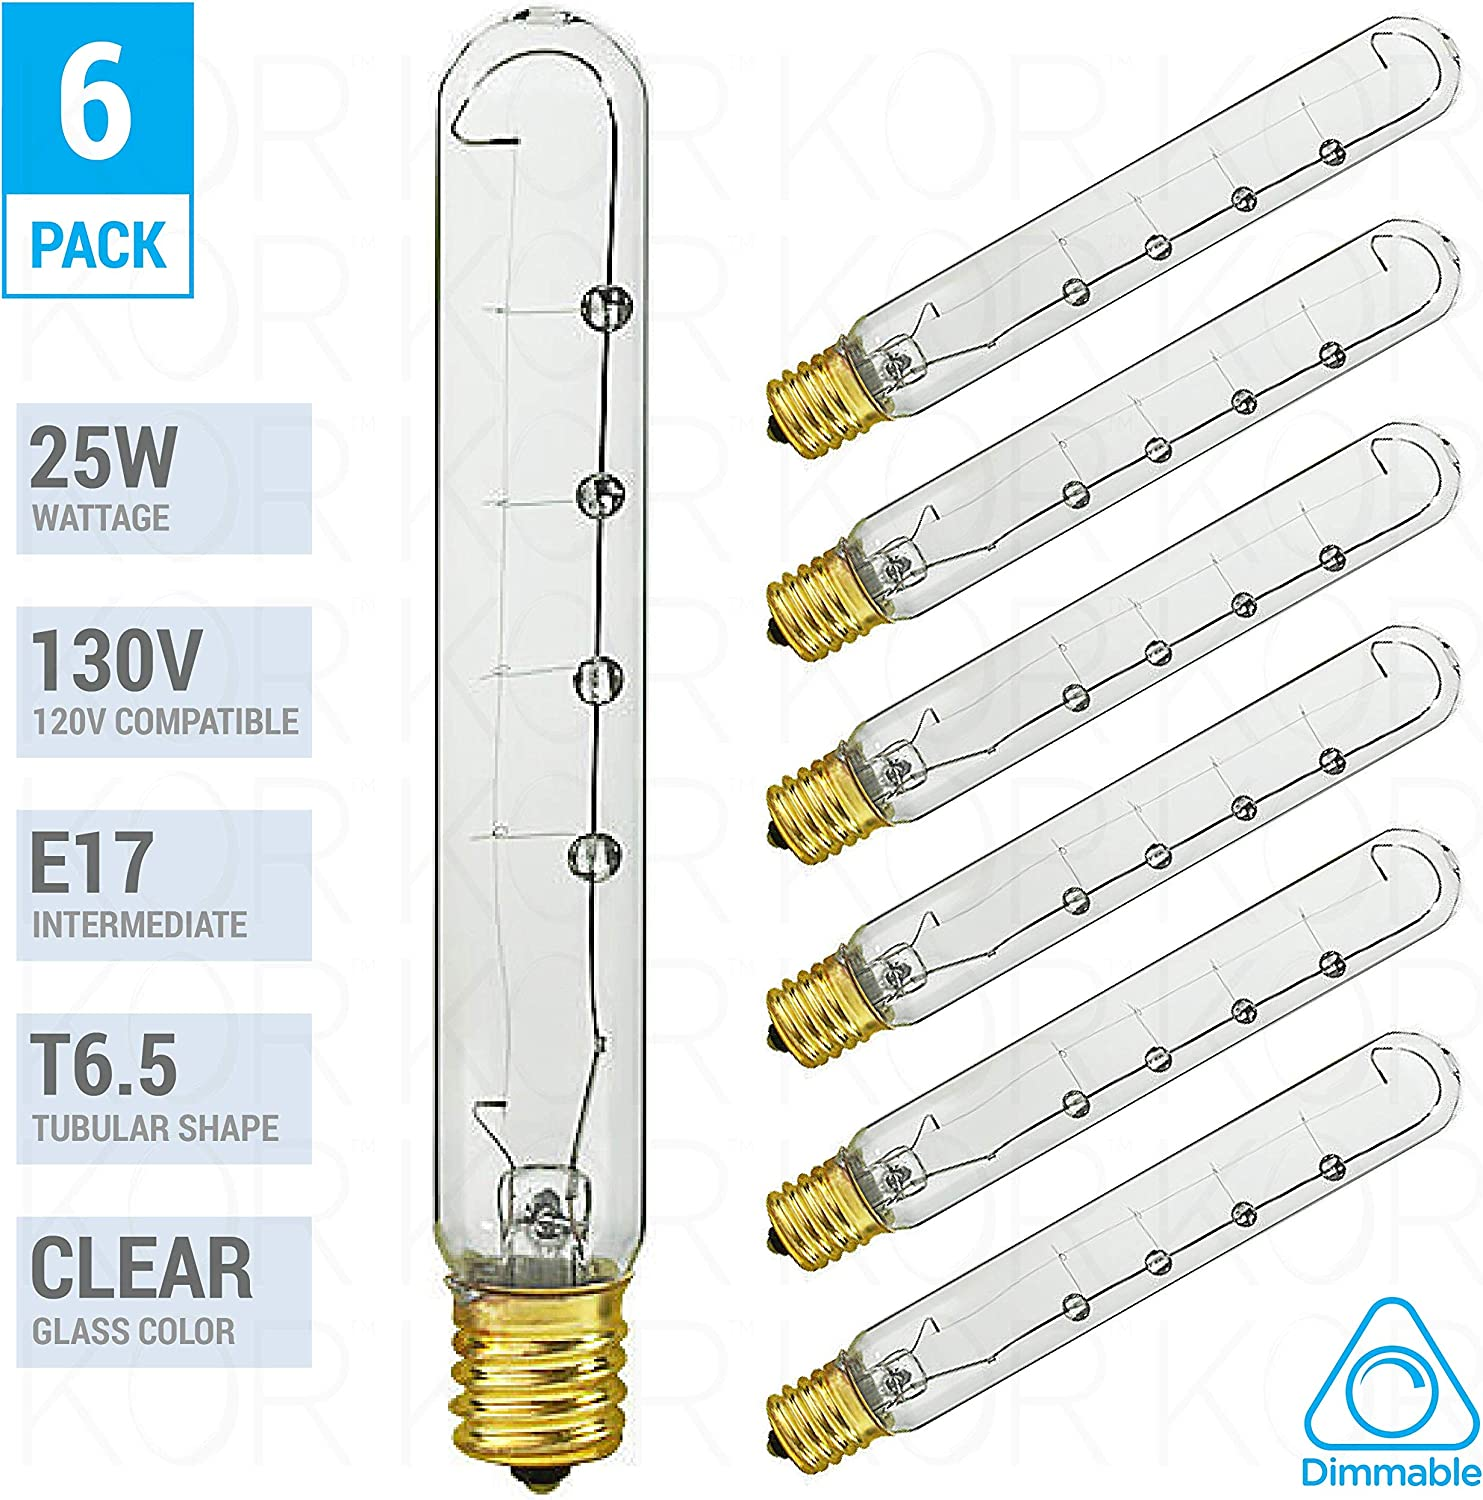 (6 Pack) T6.5/CL/N Clear Tubular Intermediate (E17) Brass-Base Incandescent T6.5 1/2N Appliance (Refrigerator Freeze Microwave Exit Light Etc.) Bulb 130 Volt (25-Watt 6-Pack)